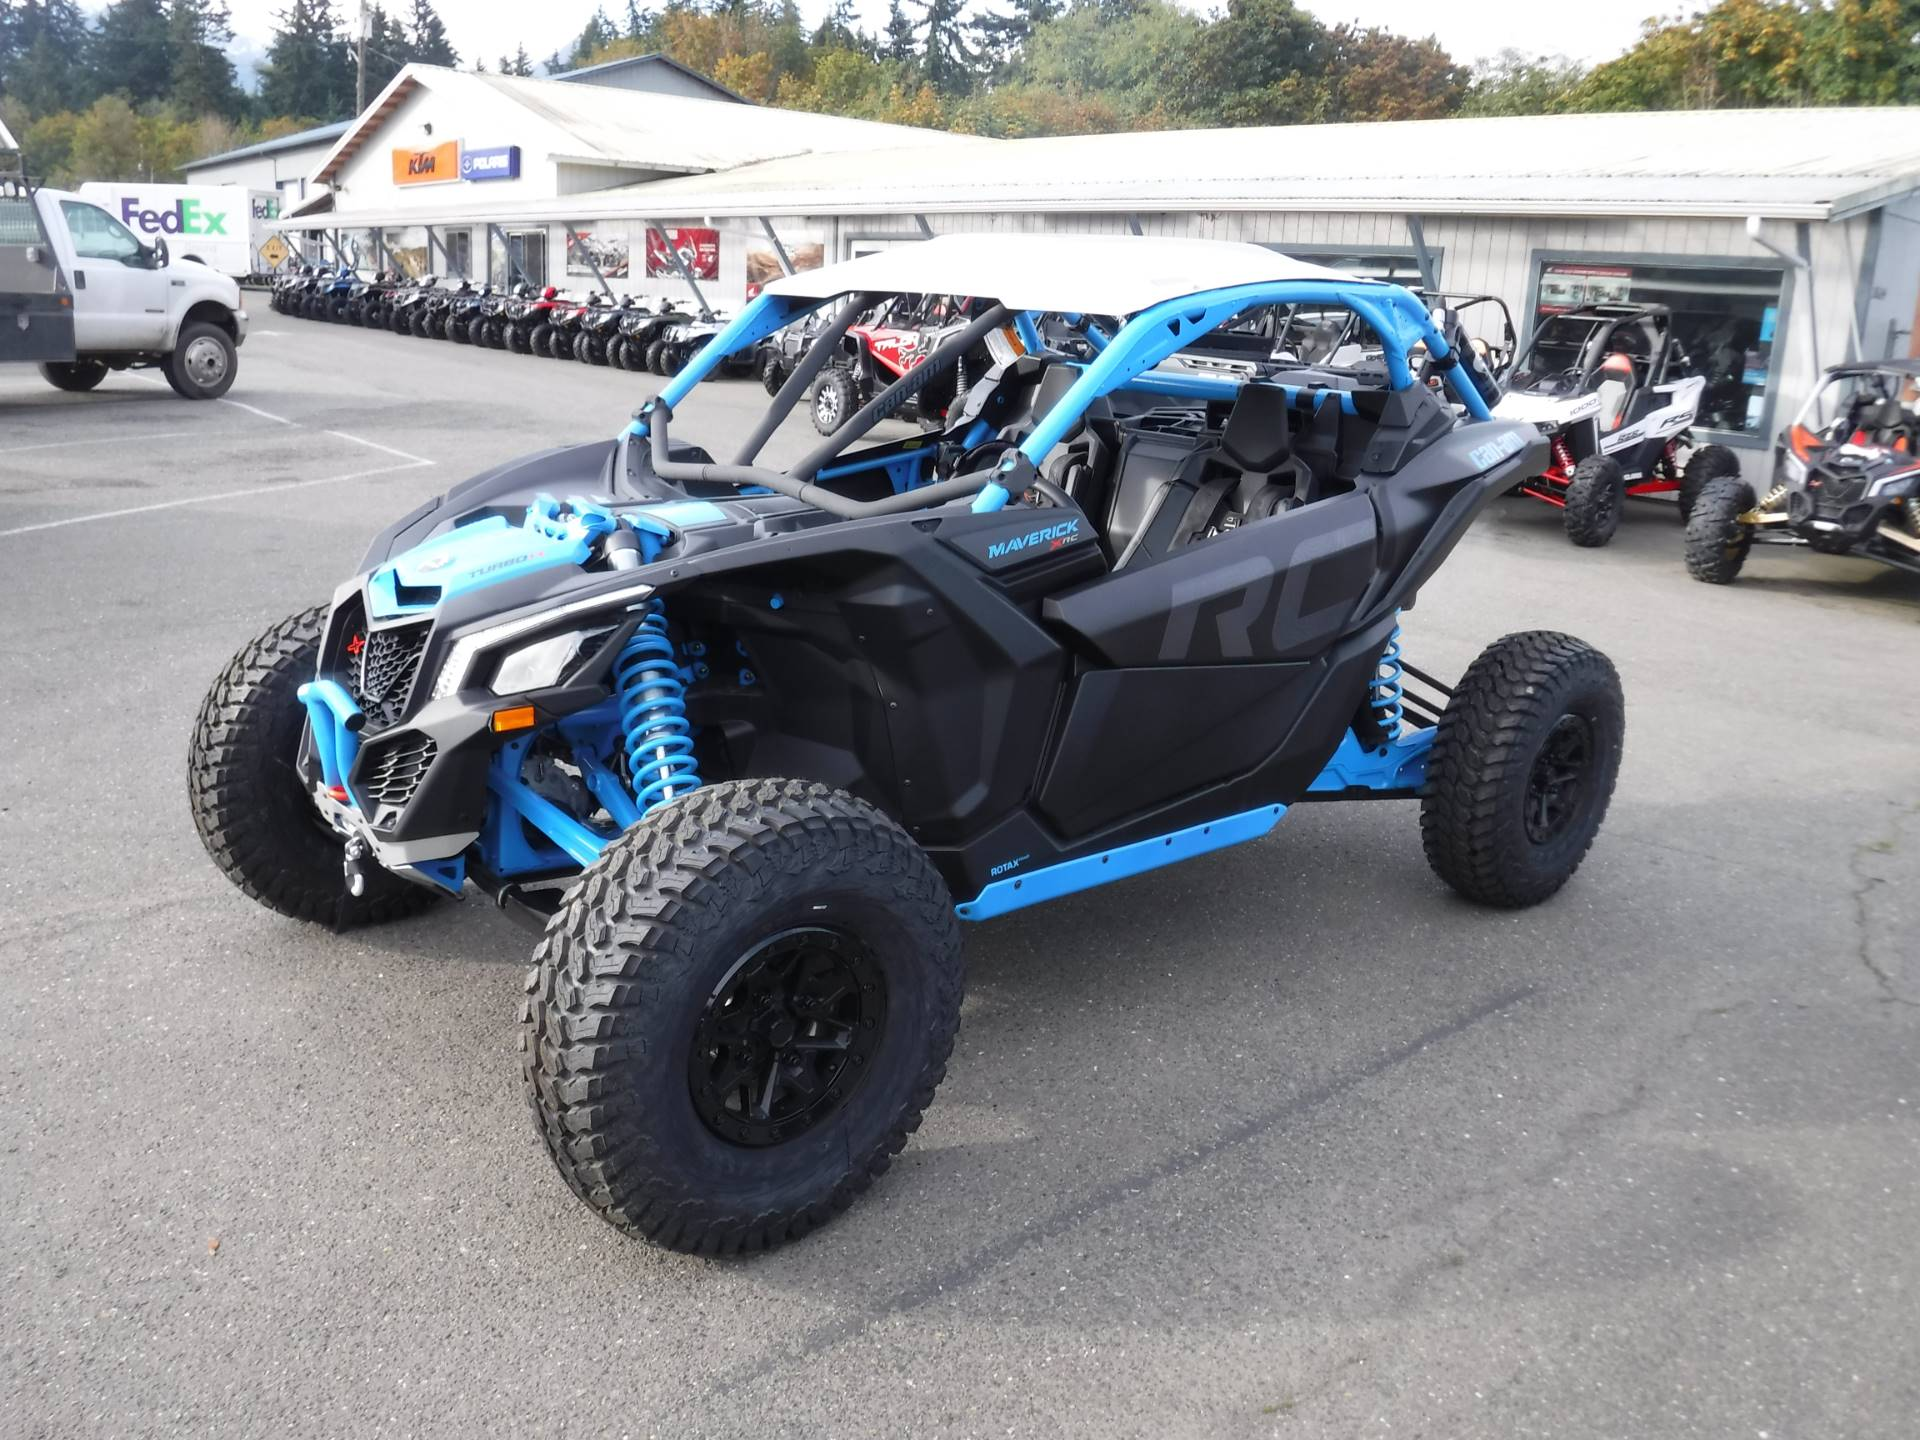 2019 Can-Am Maverick X3 X rc Turbo R in Port Angeles, Washington - Photo 1